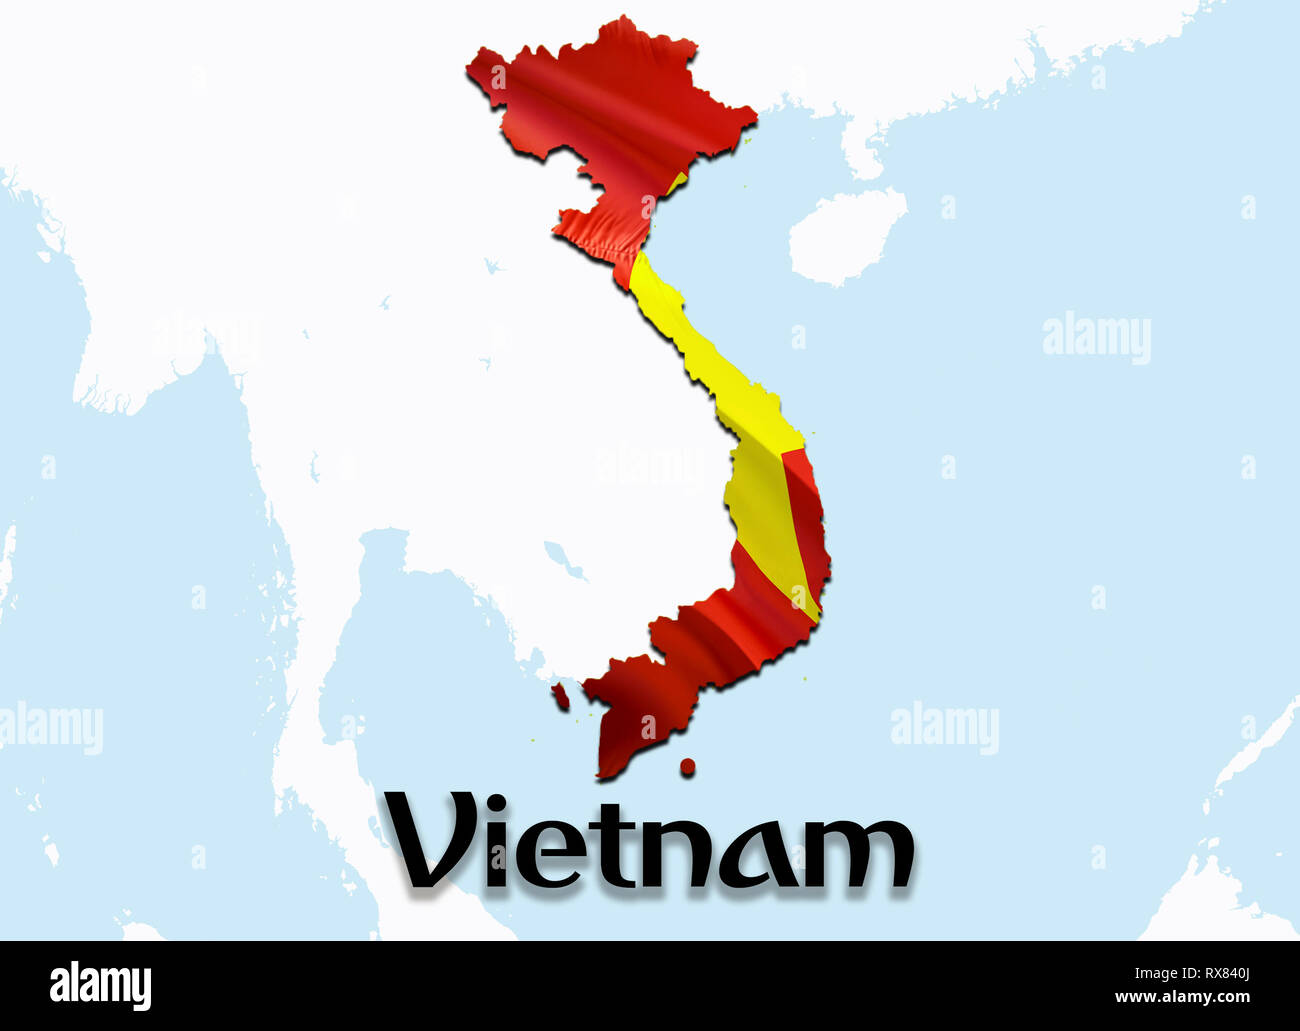 Vietnam Country Map On Sign Stockfotos & Vietnam Country Map ...